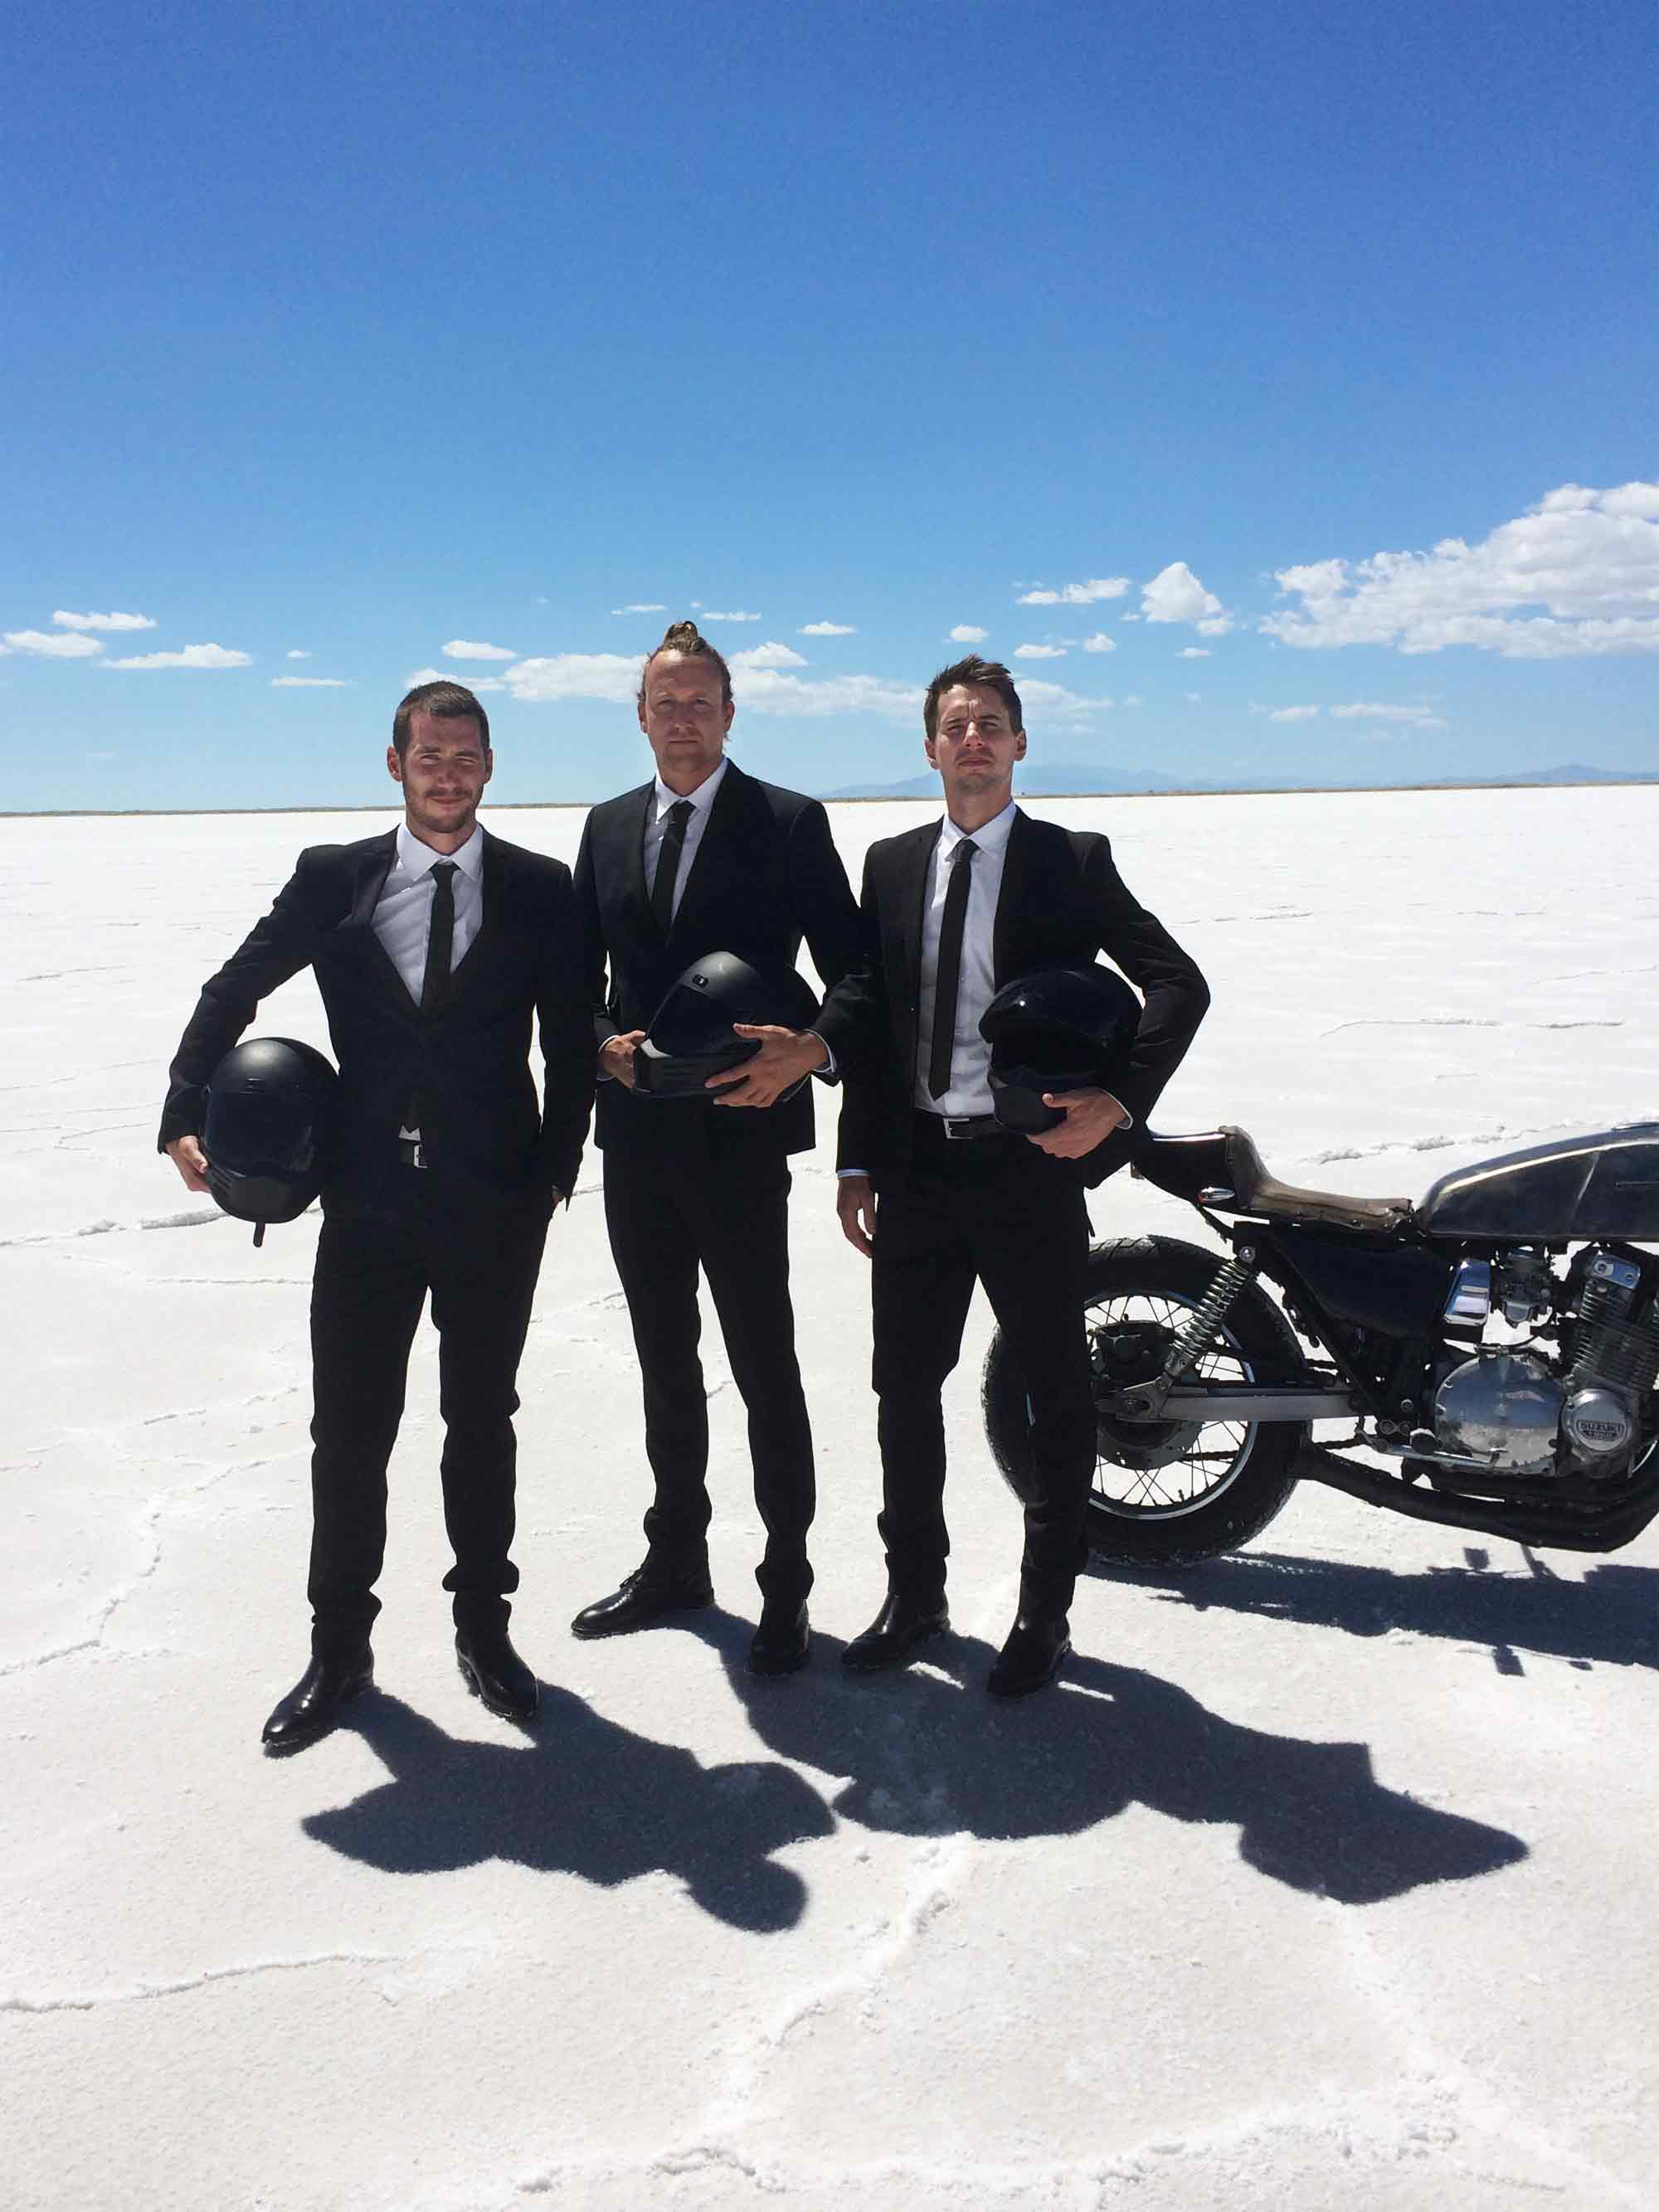 Hallenstein Brothers | Men's Clothing Production Salt Flats Utah 4